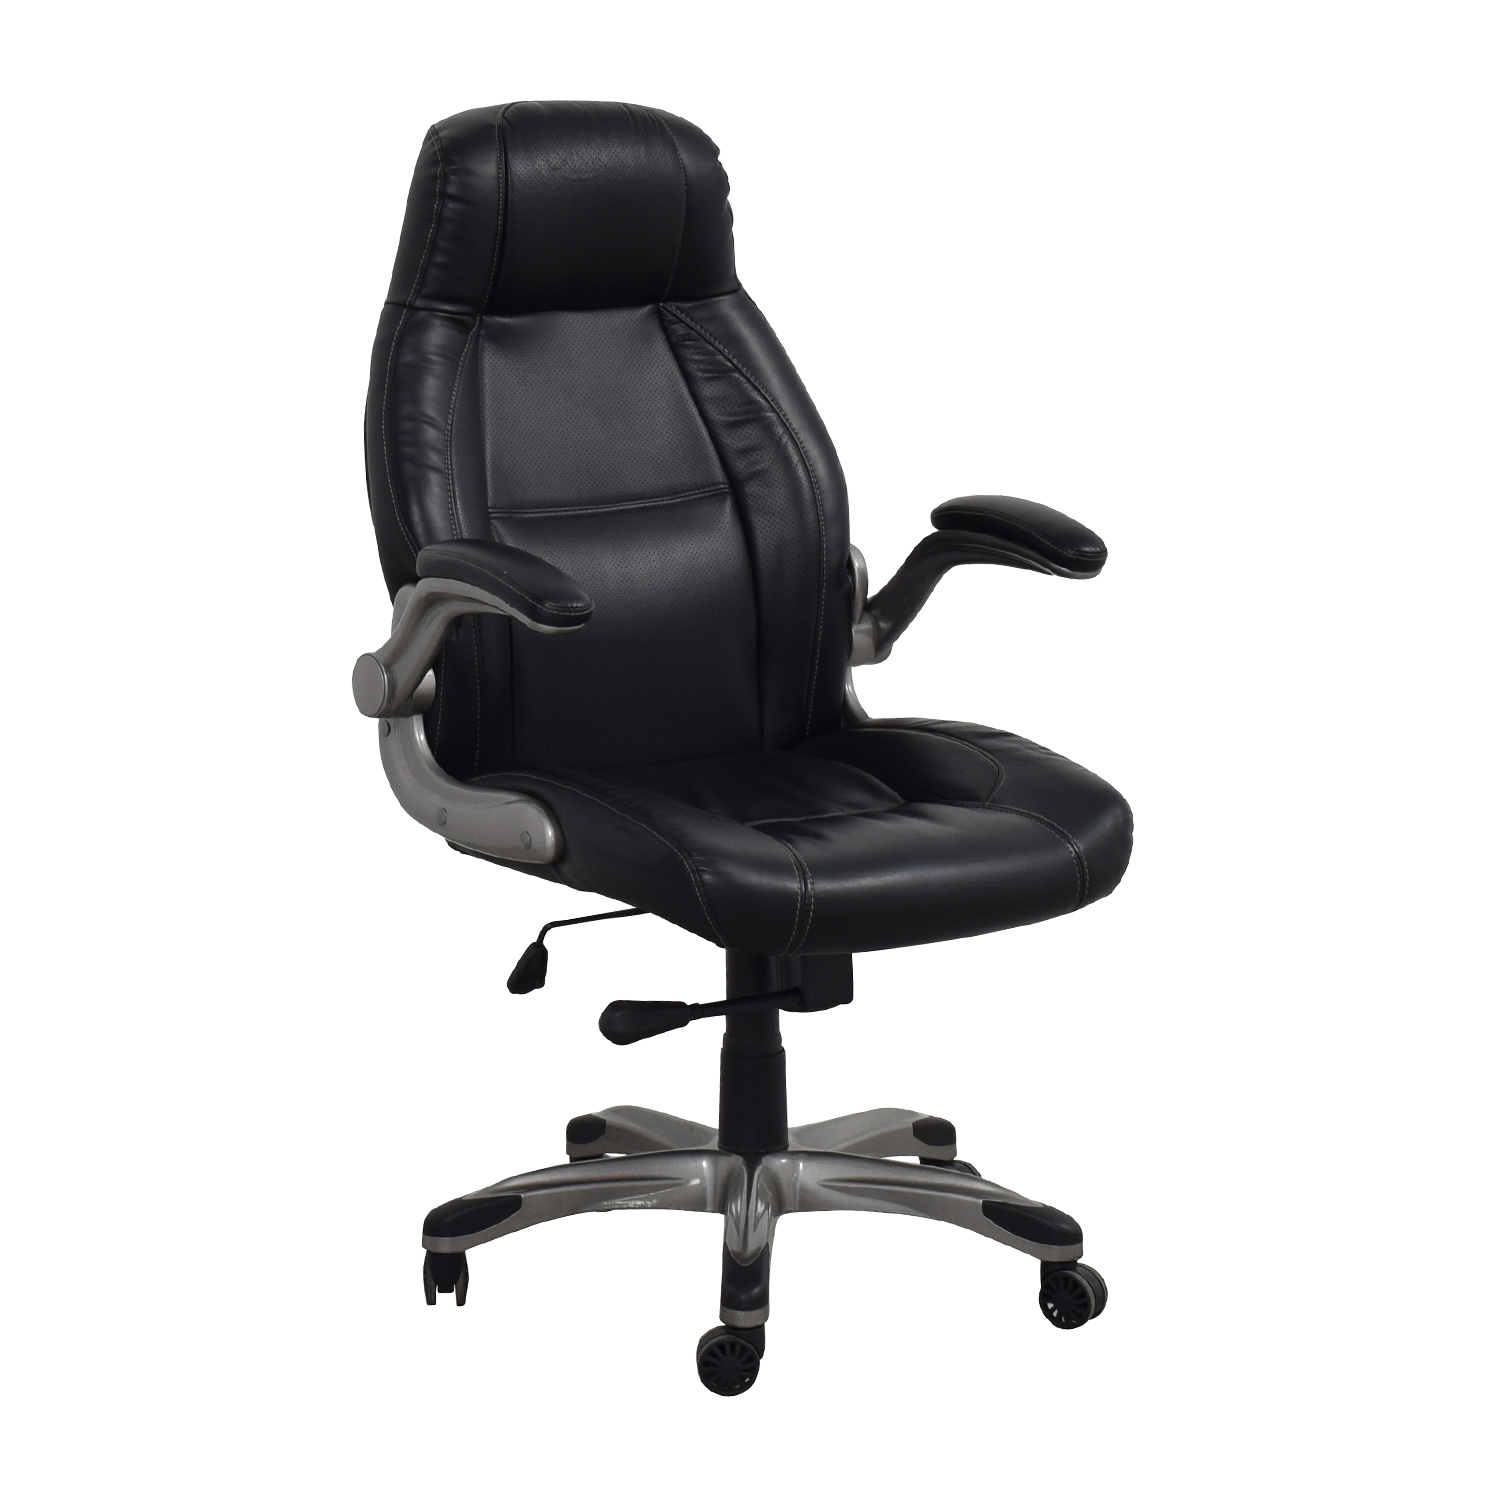 buy Staples Torrent High-Back Executive Chair in Black Staples